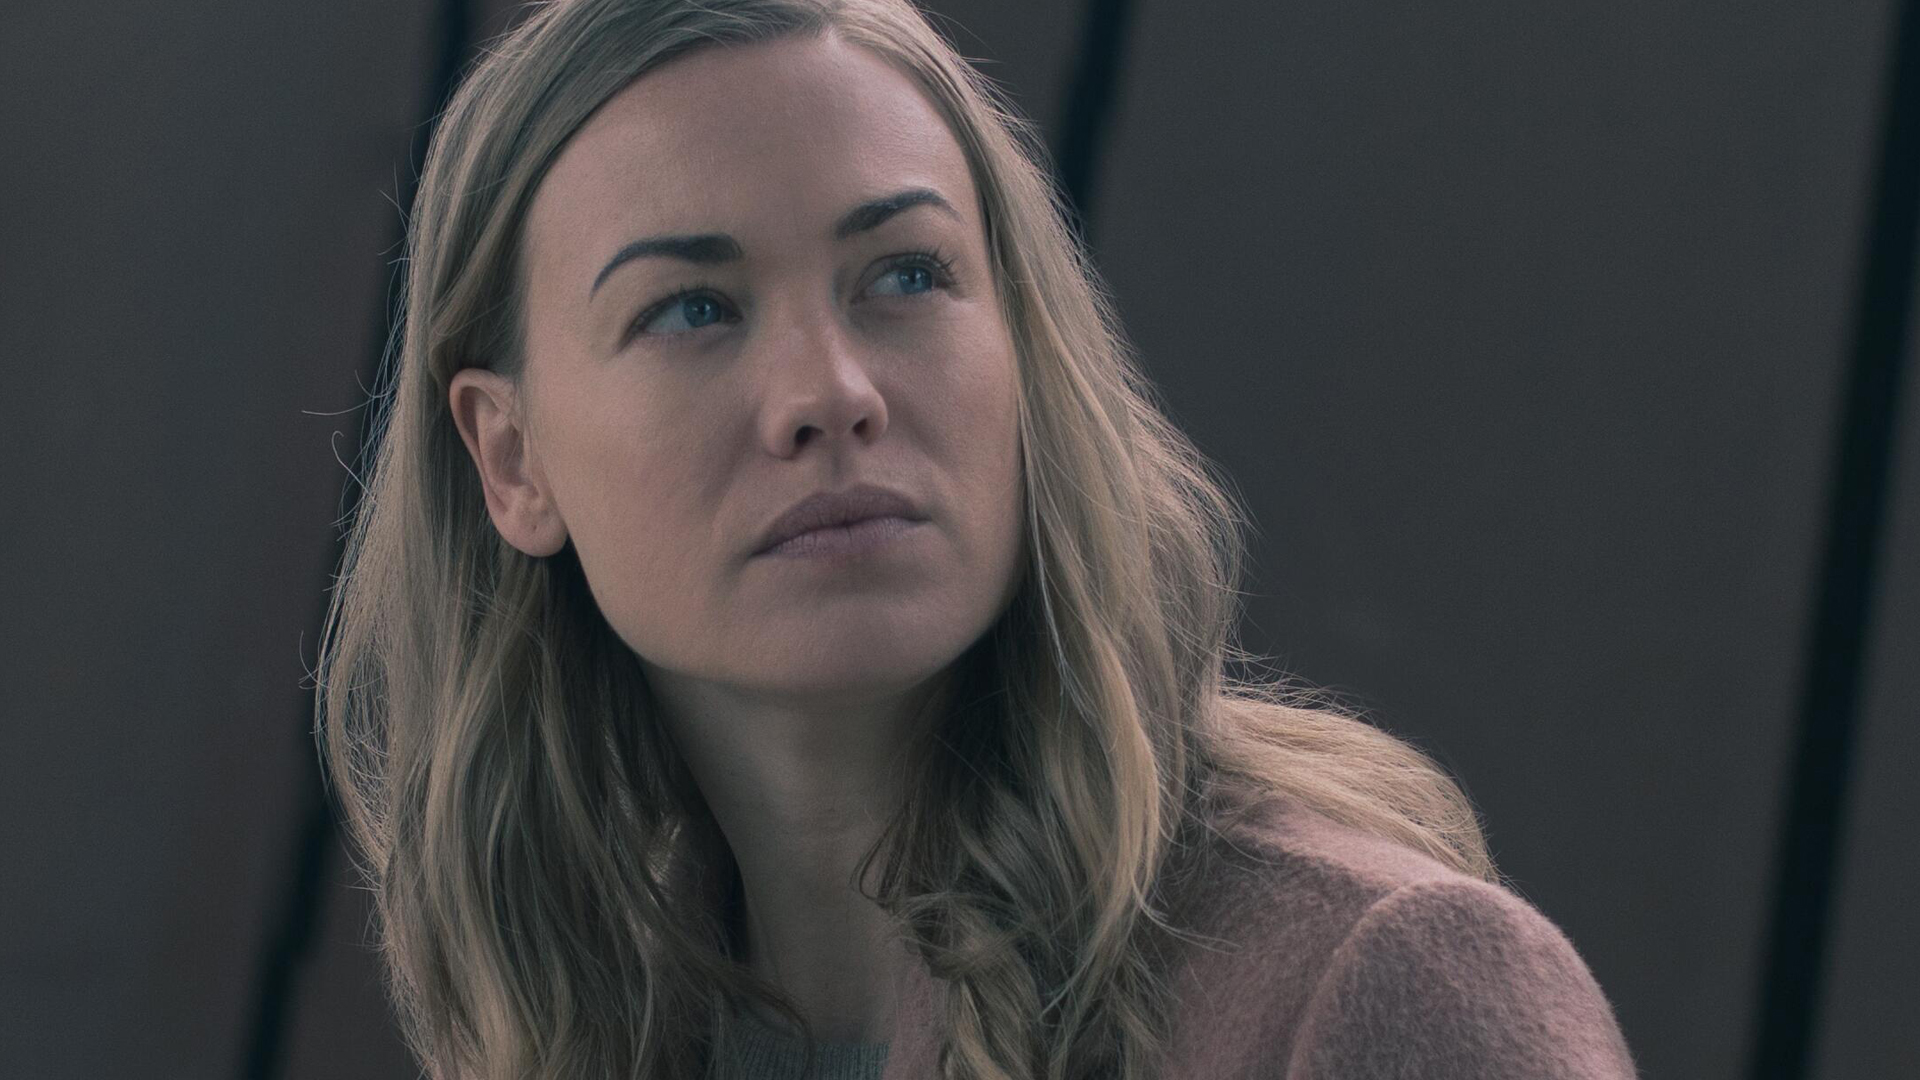 Yvonne Strahovski as Serena Joy Waterford looking up at someone in 'The Handmaid's Tale' Season 3 Episode 13